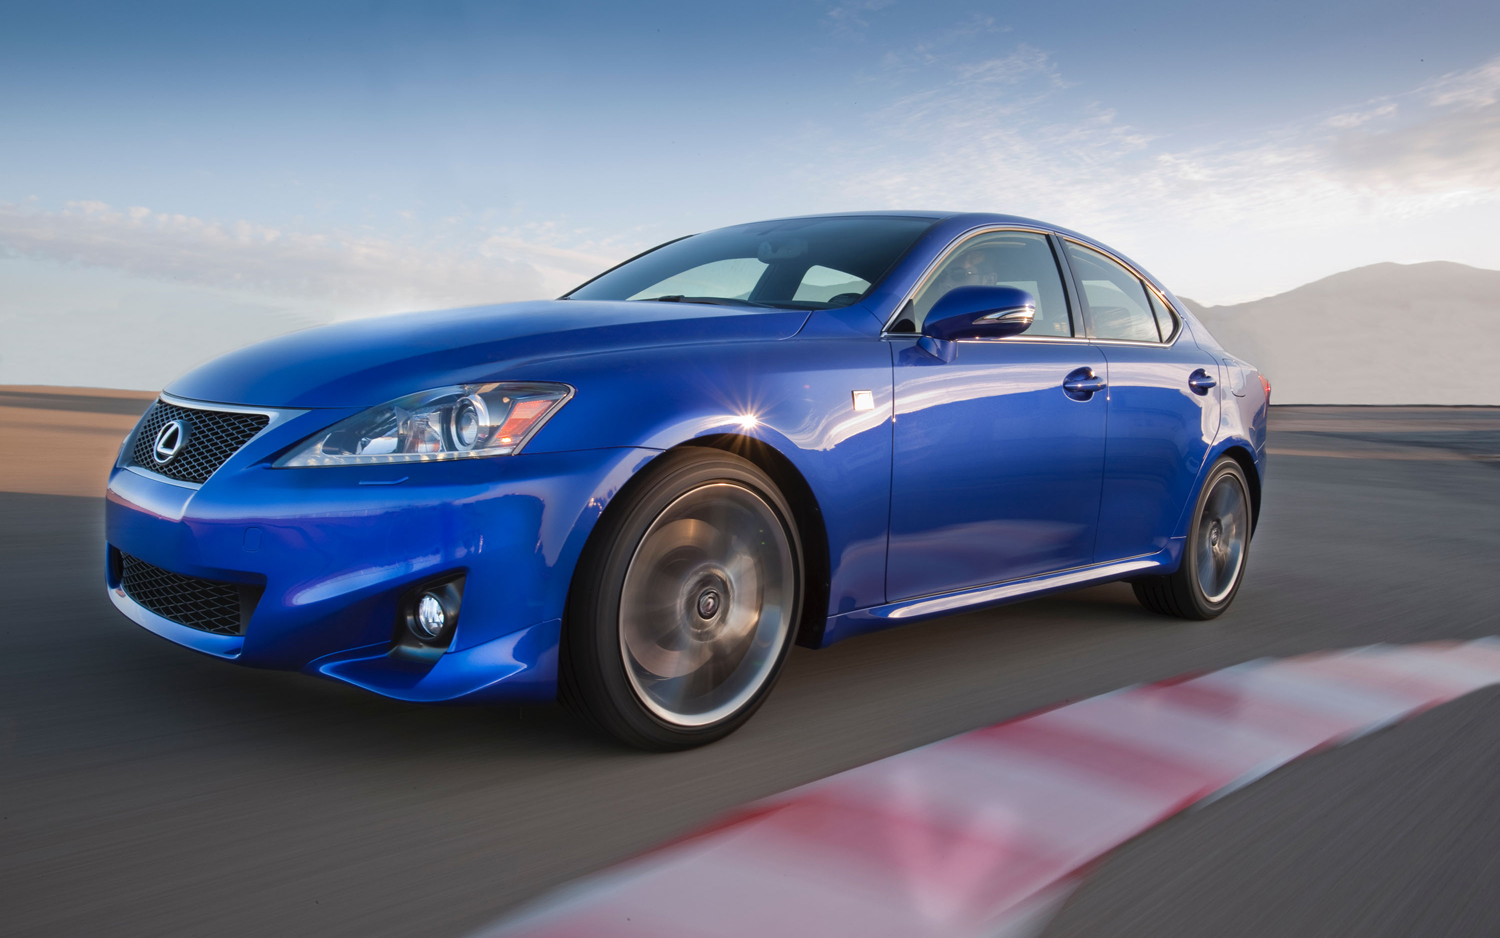 2013 Lexus Is F #19